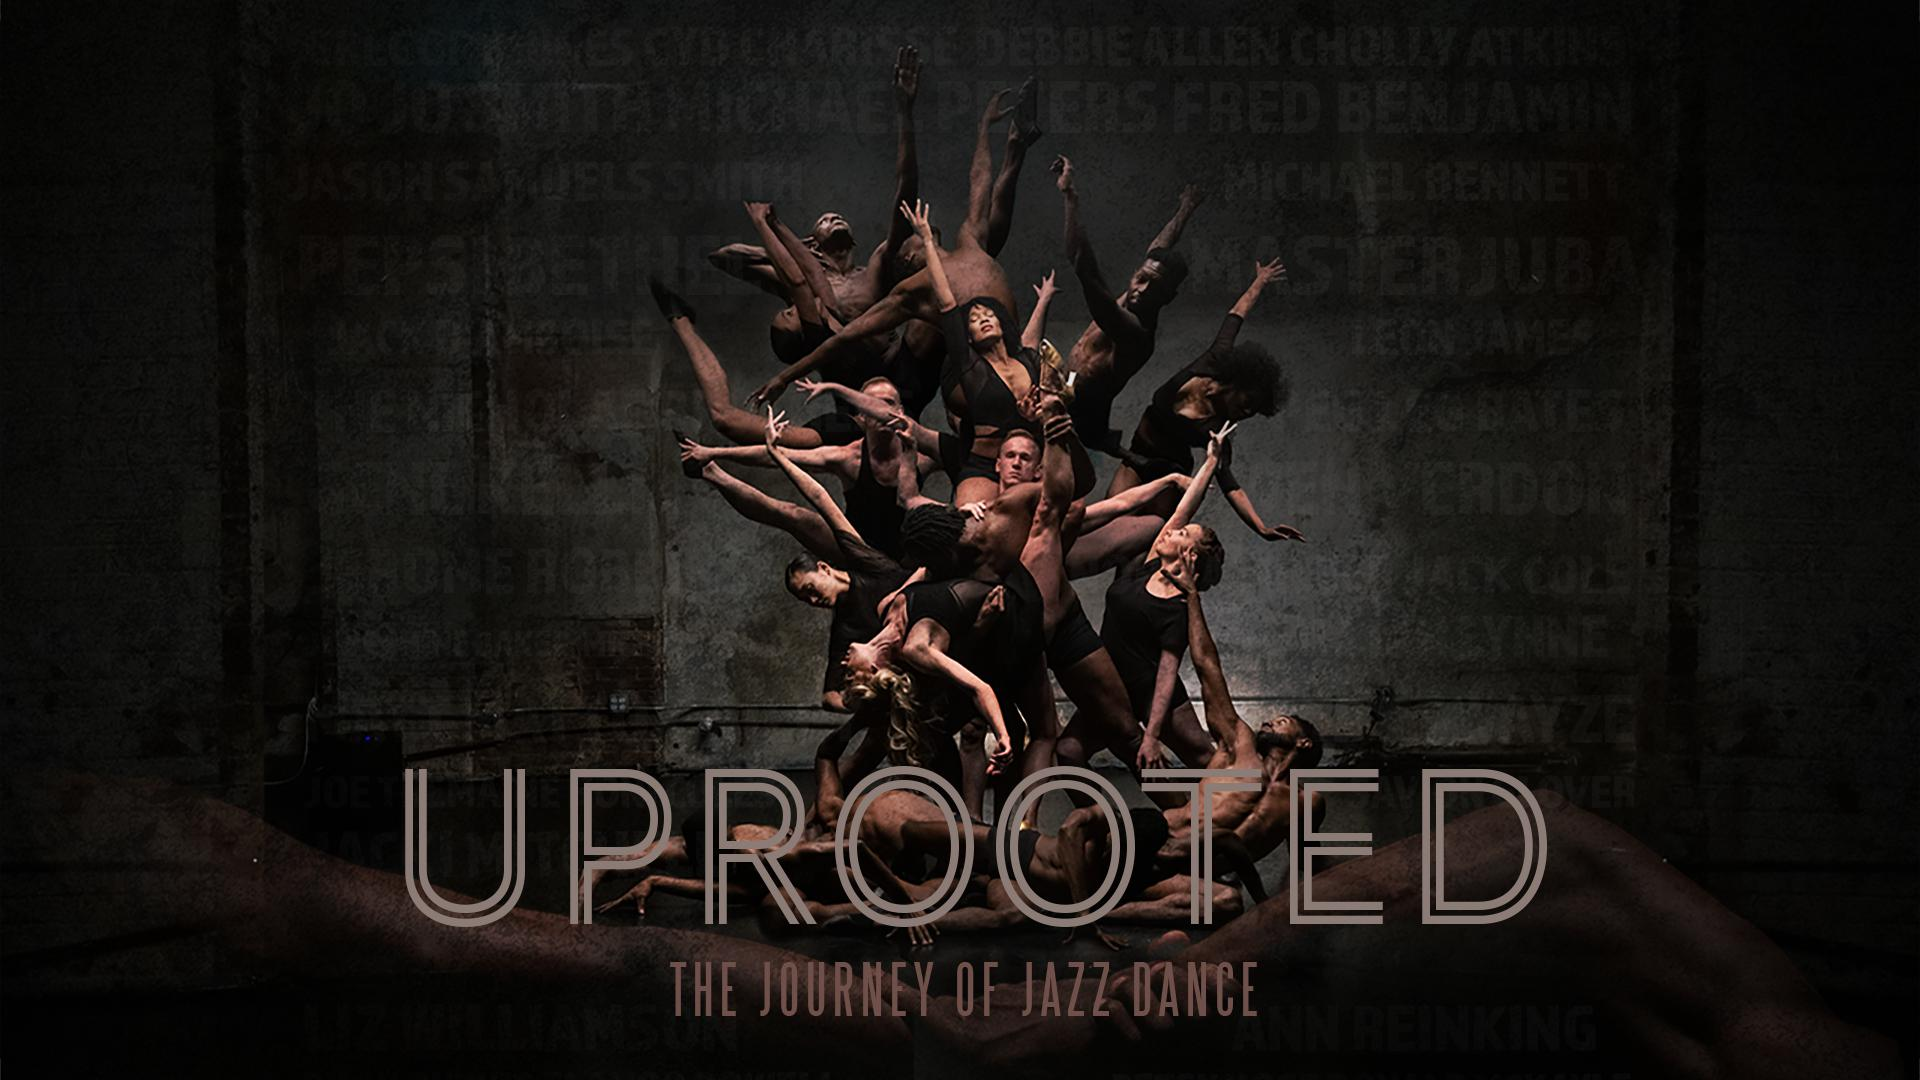 Uprooted - The Journey of Jazz Dance